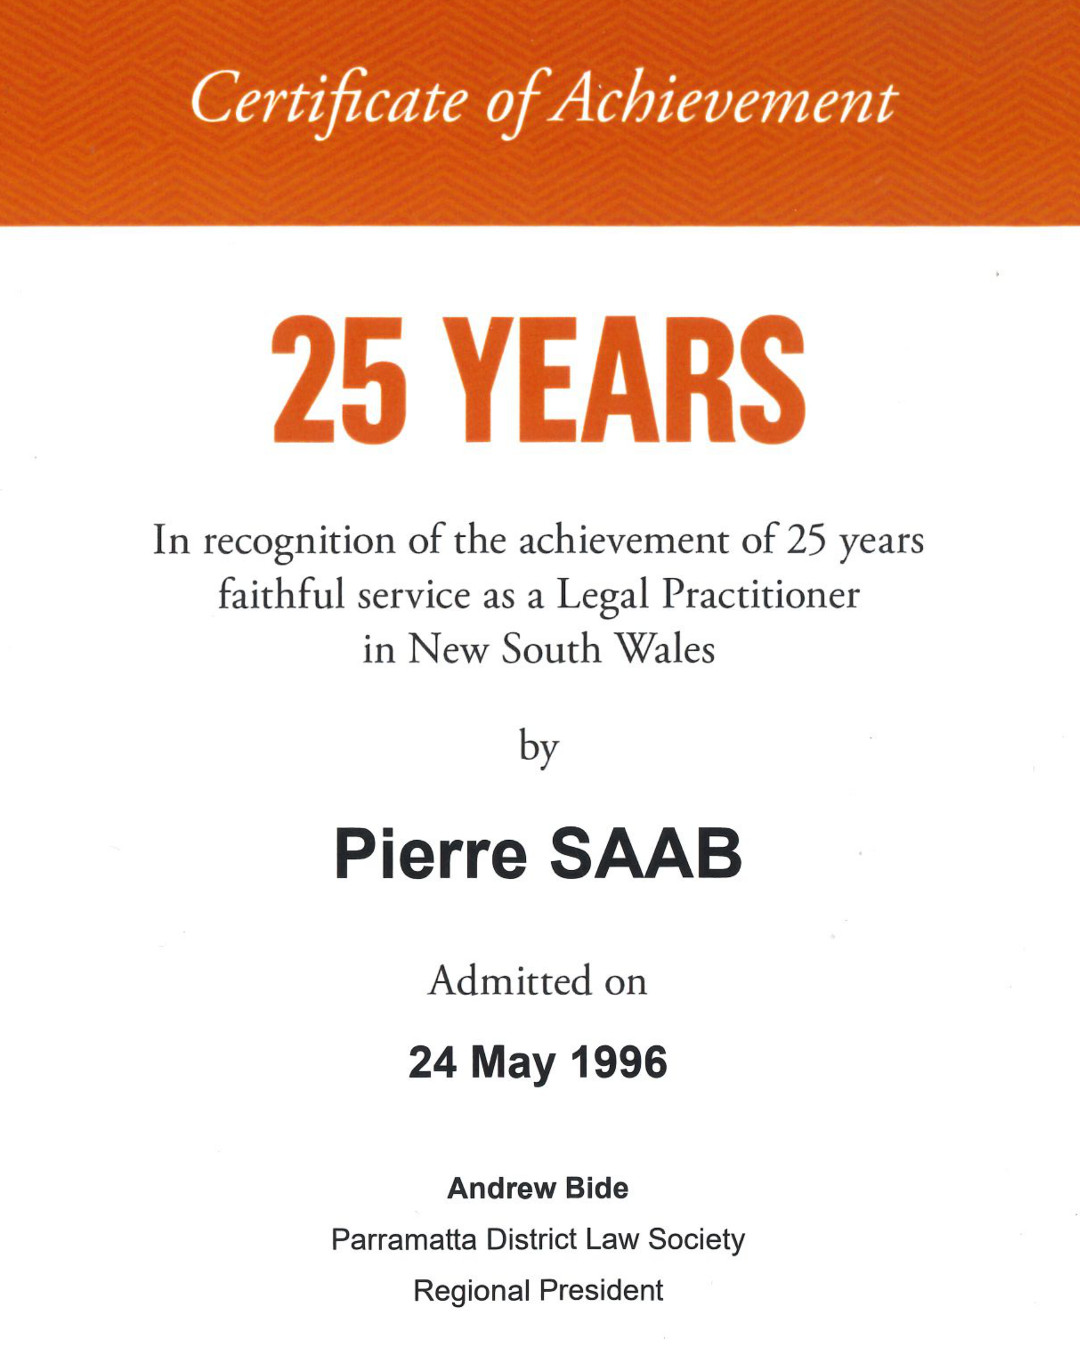 Congratulations on 25 Years!